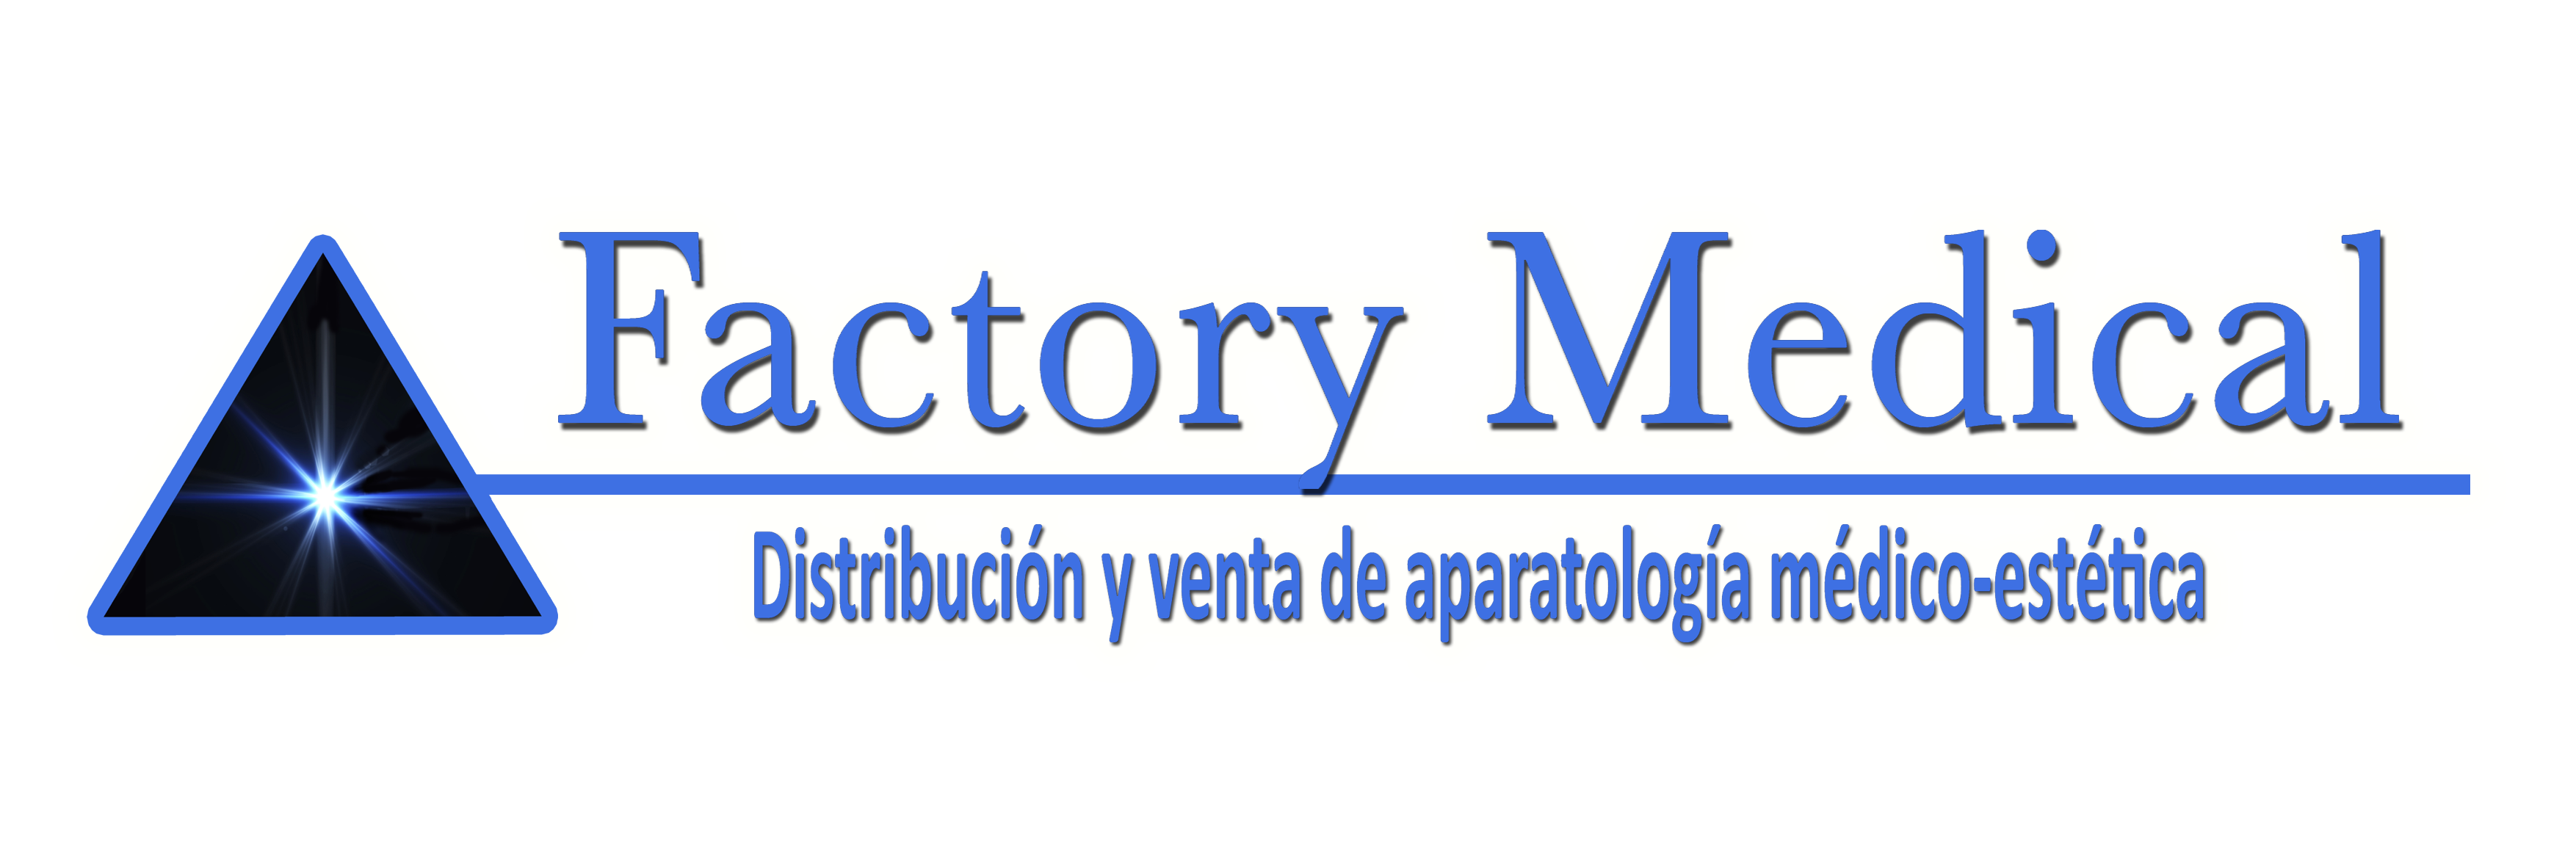 Factory Medical